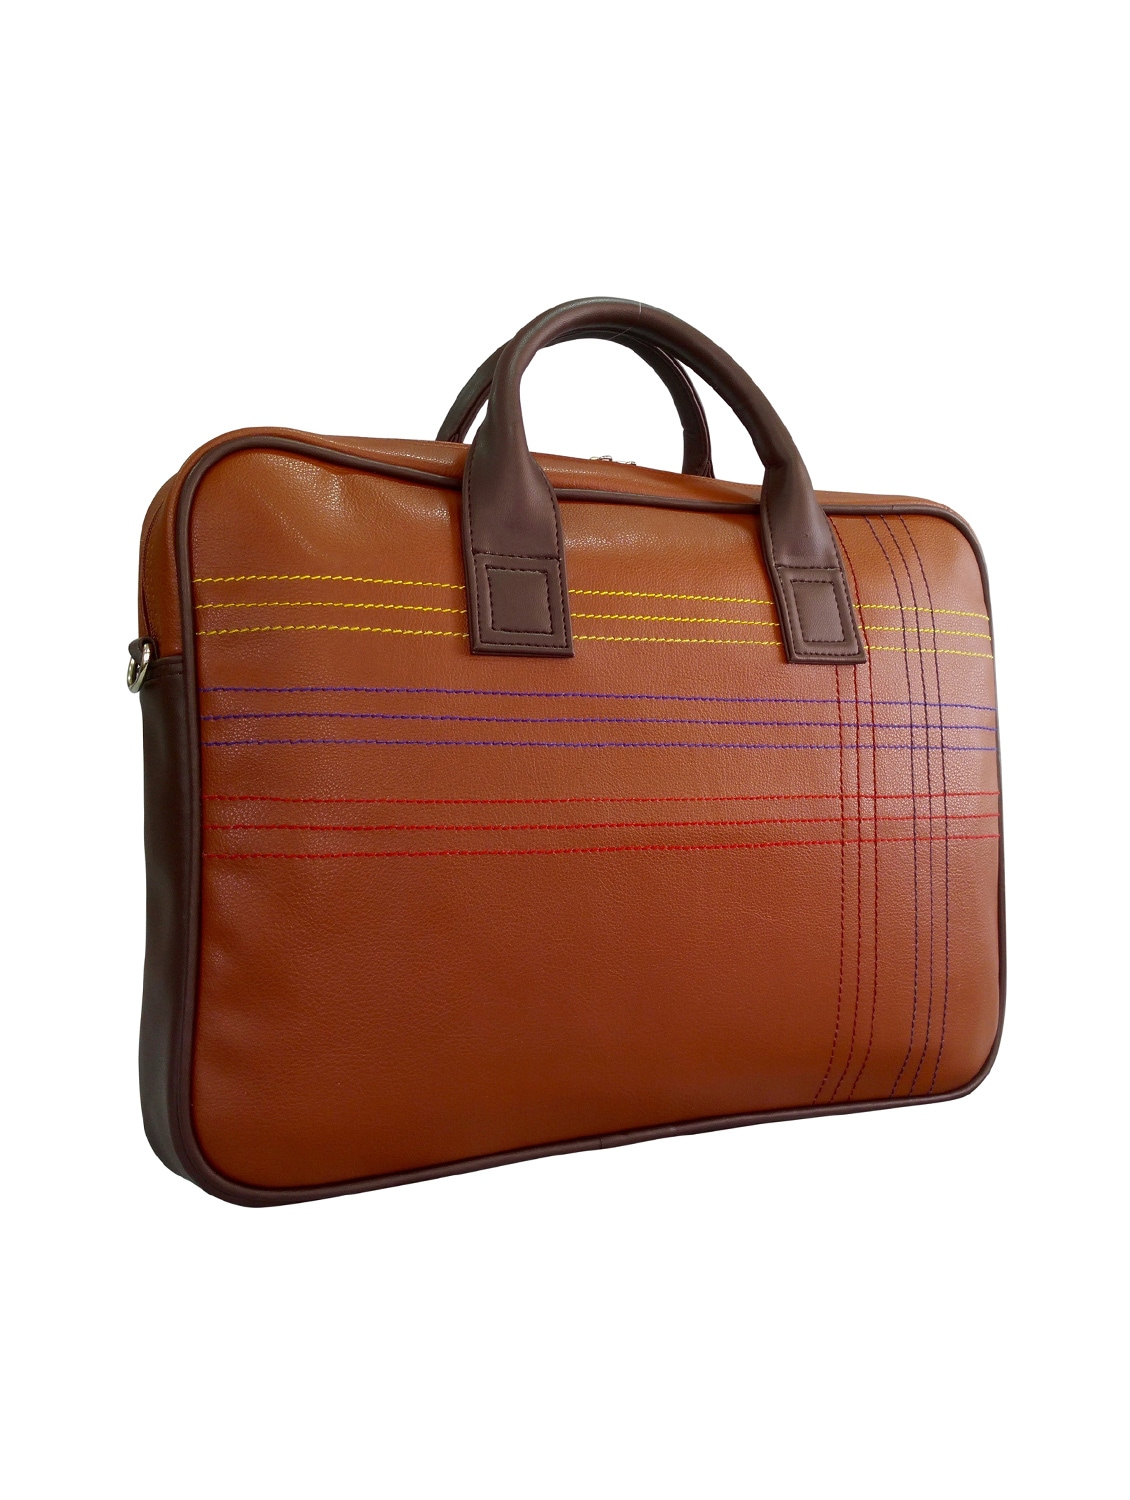 Brown Faux Leather Laptop Bag By Toteteca Online Ping For Bags In India 10549501